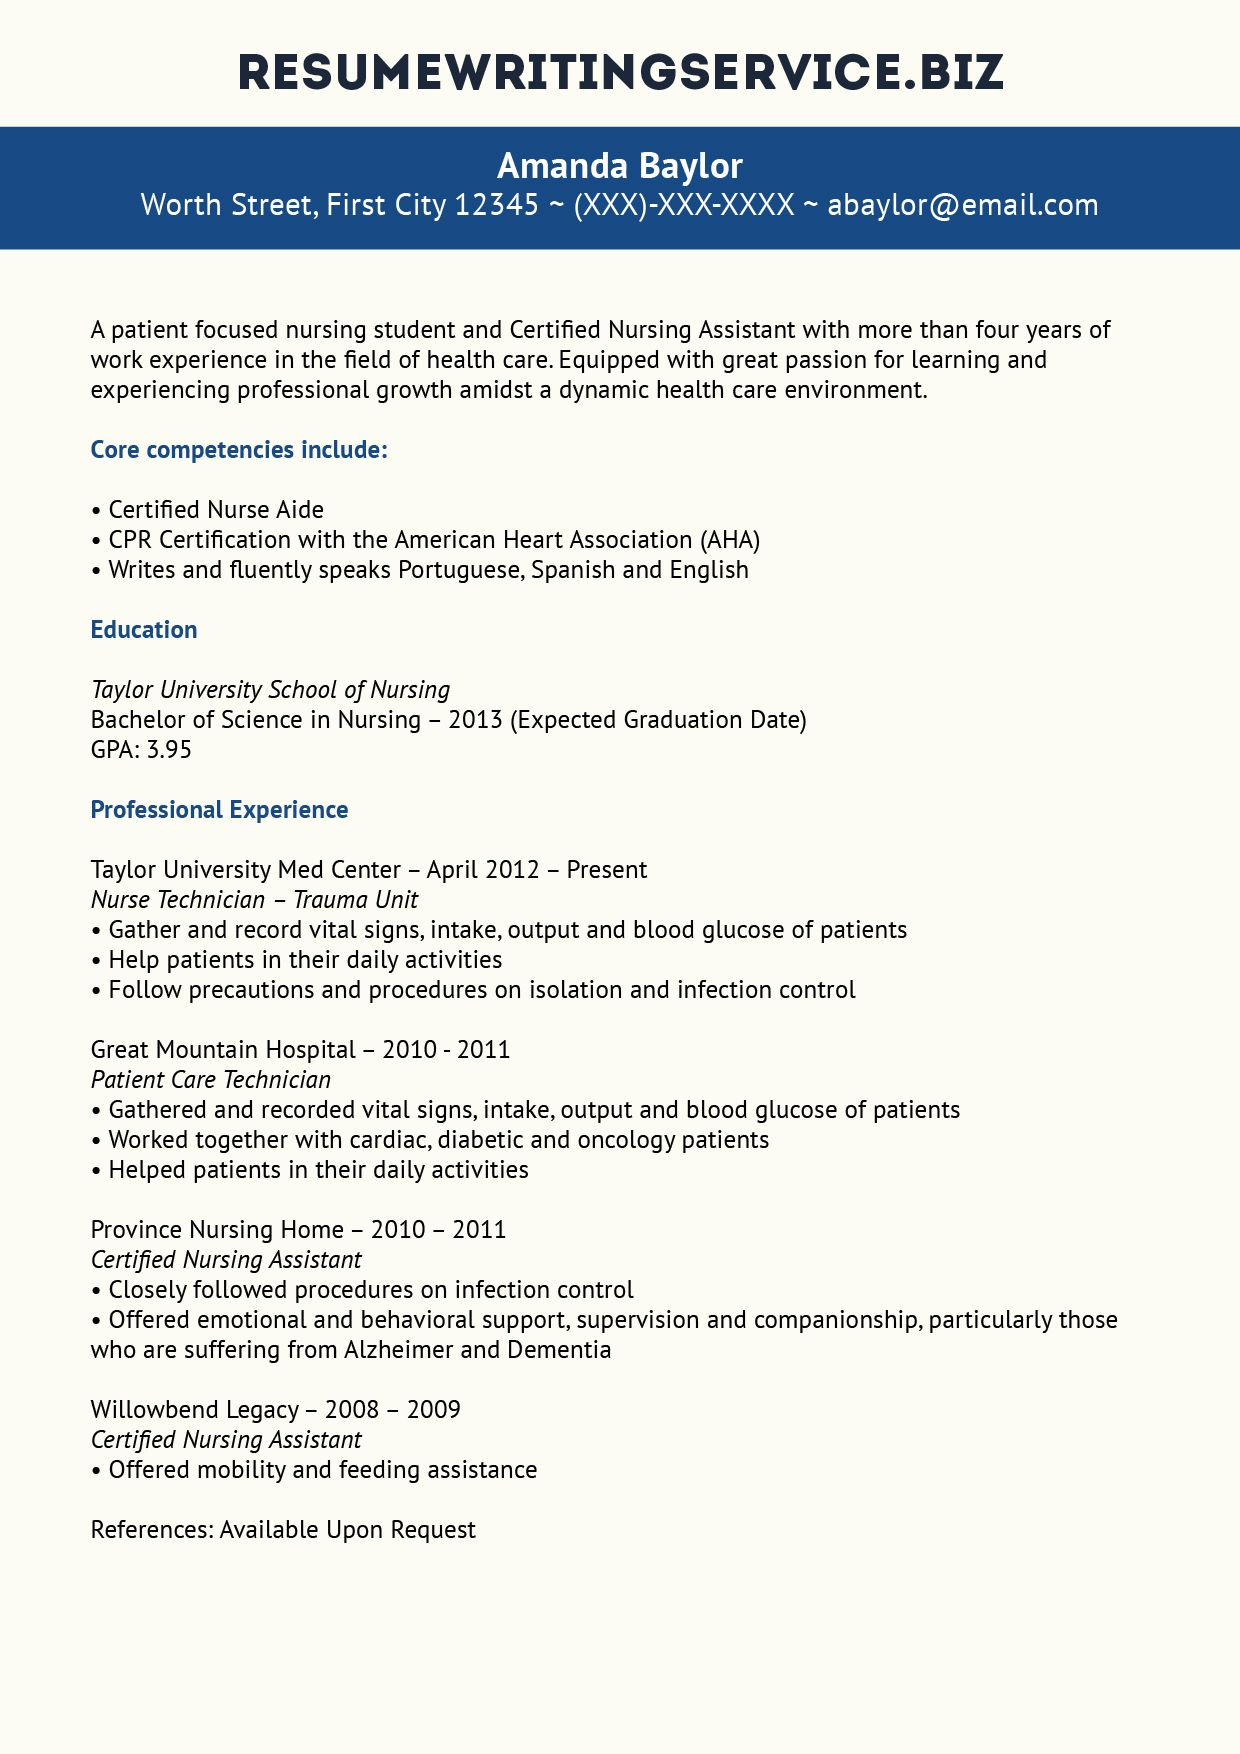 Sample Resume For Nursing Assistant Inspiration Nursing Student Resume Sample  Studentcareer  Pinterest  Student .